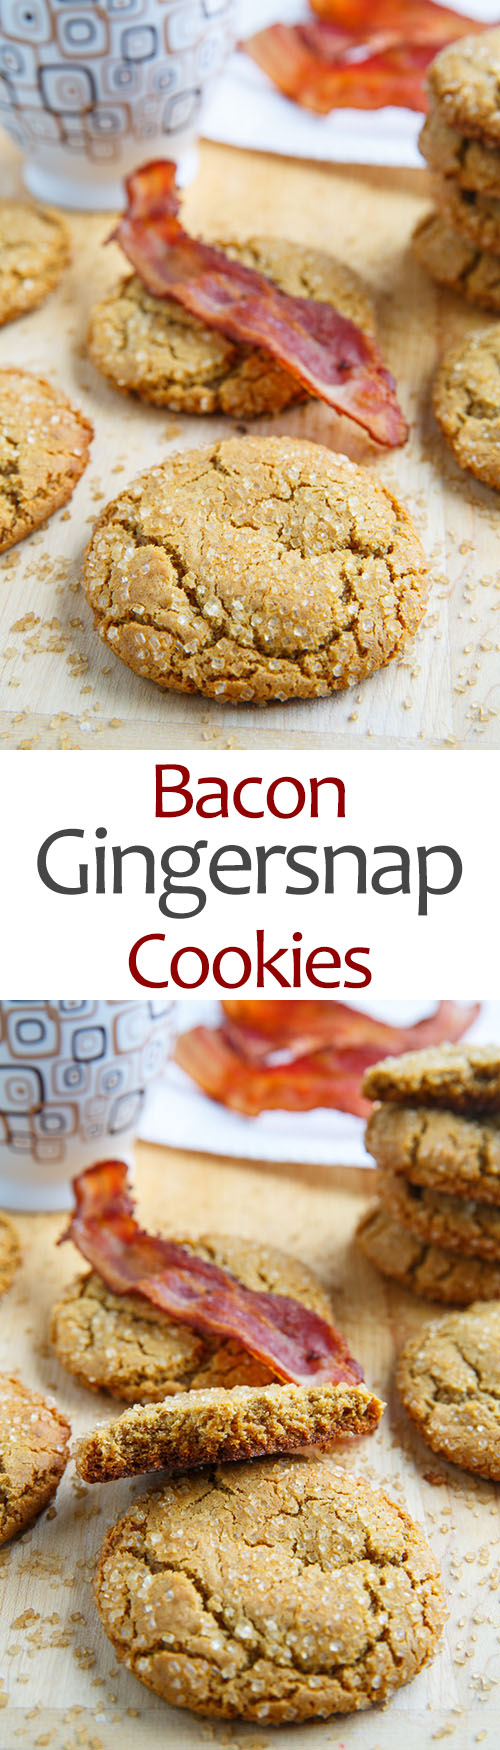 Bacon Gingersnap Cookies